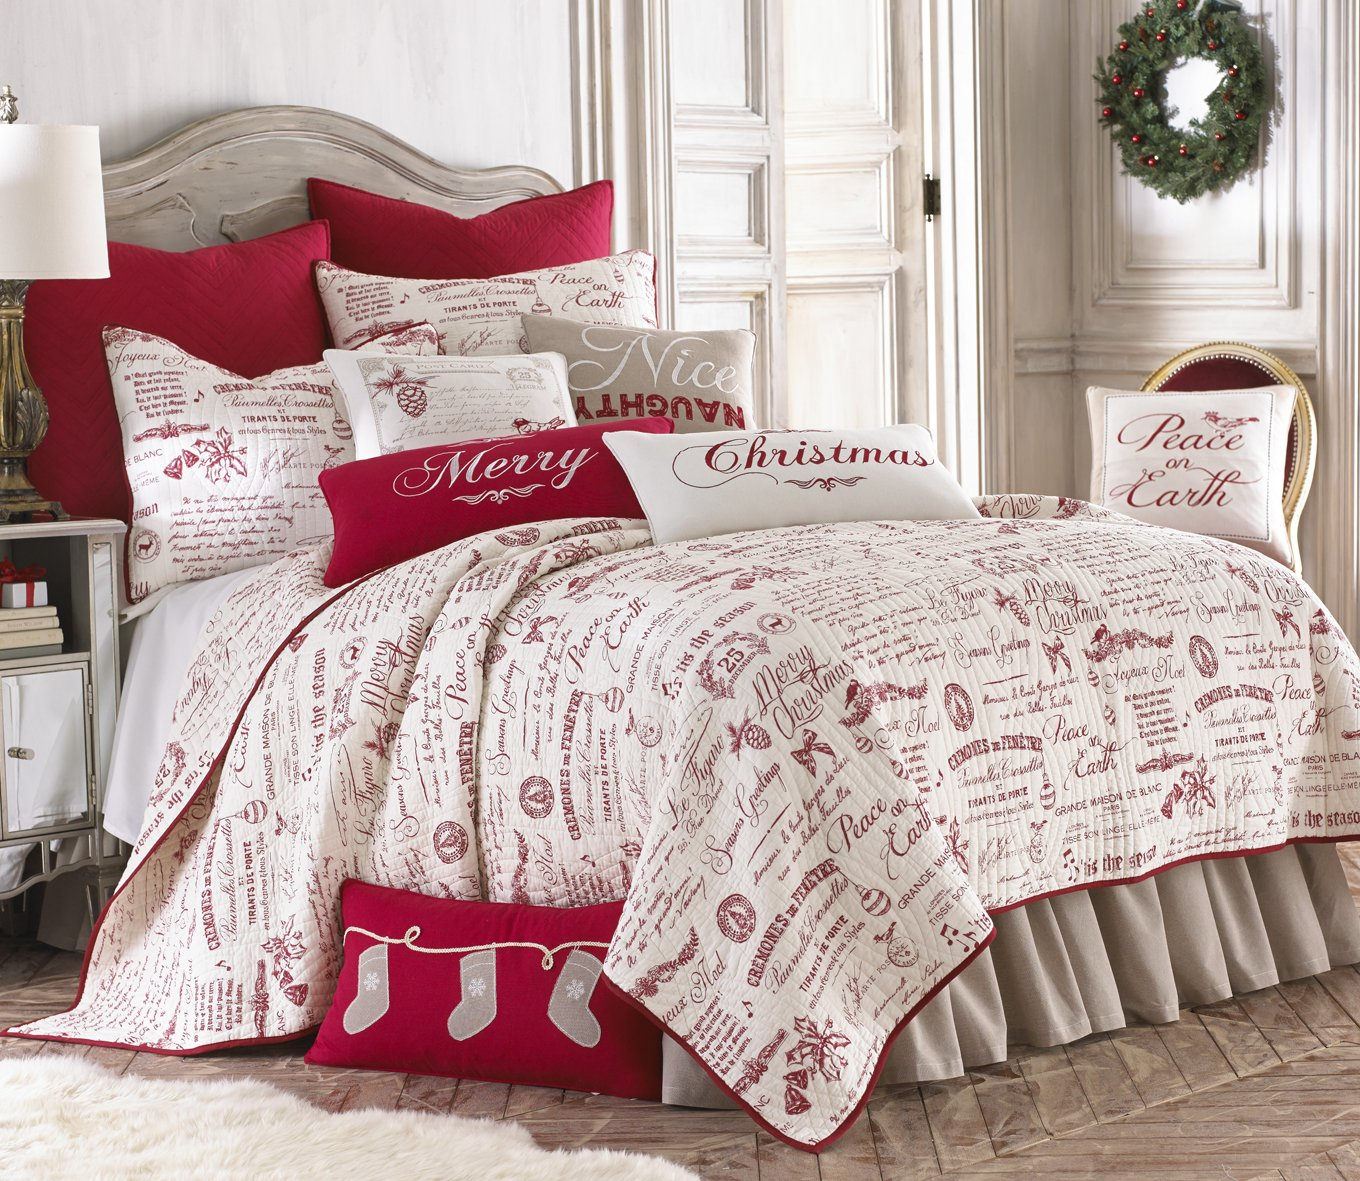 Levtex Noelle King Quilt Set, White/Red Script, Cotton Christmas Holiday